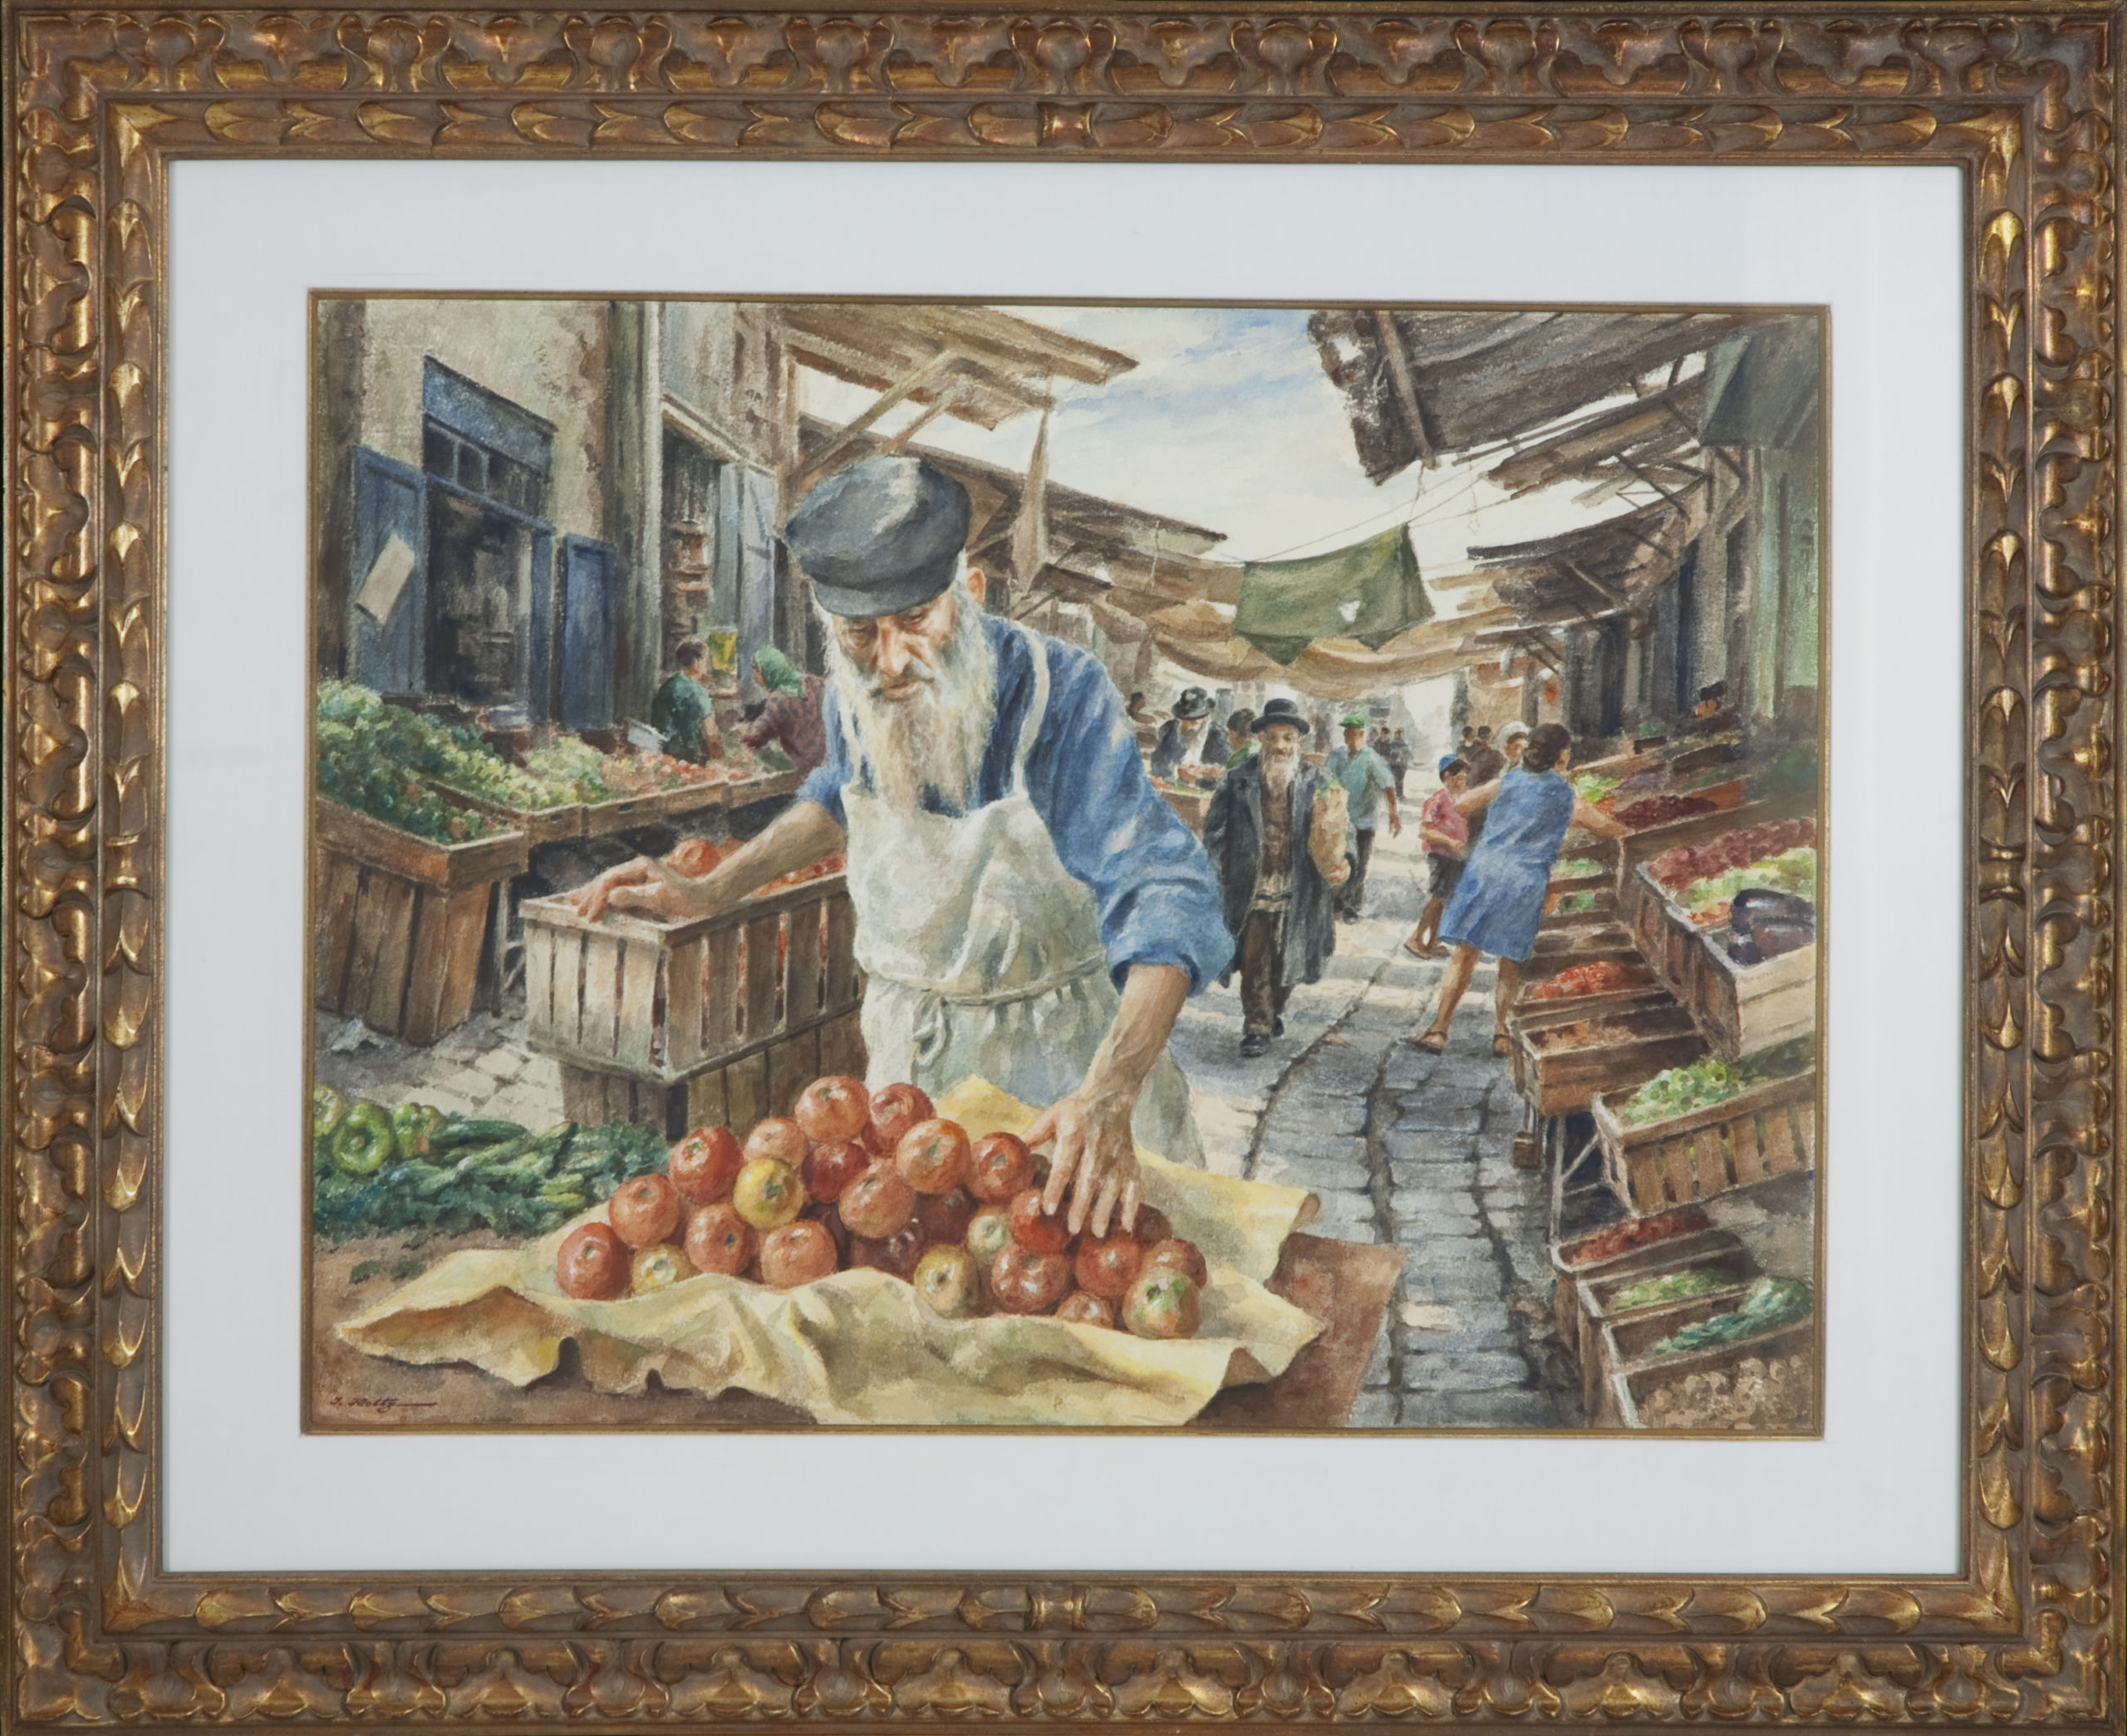 132 Market Place Israel 1974 - Watercolor - 29.5 x 21.75 - Frame: 42 x 34.25 x 1.5